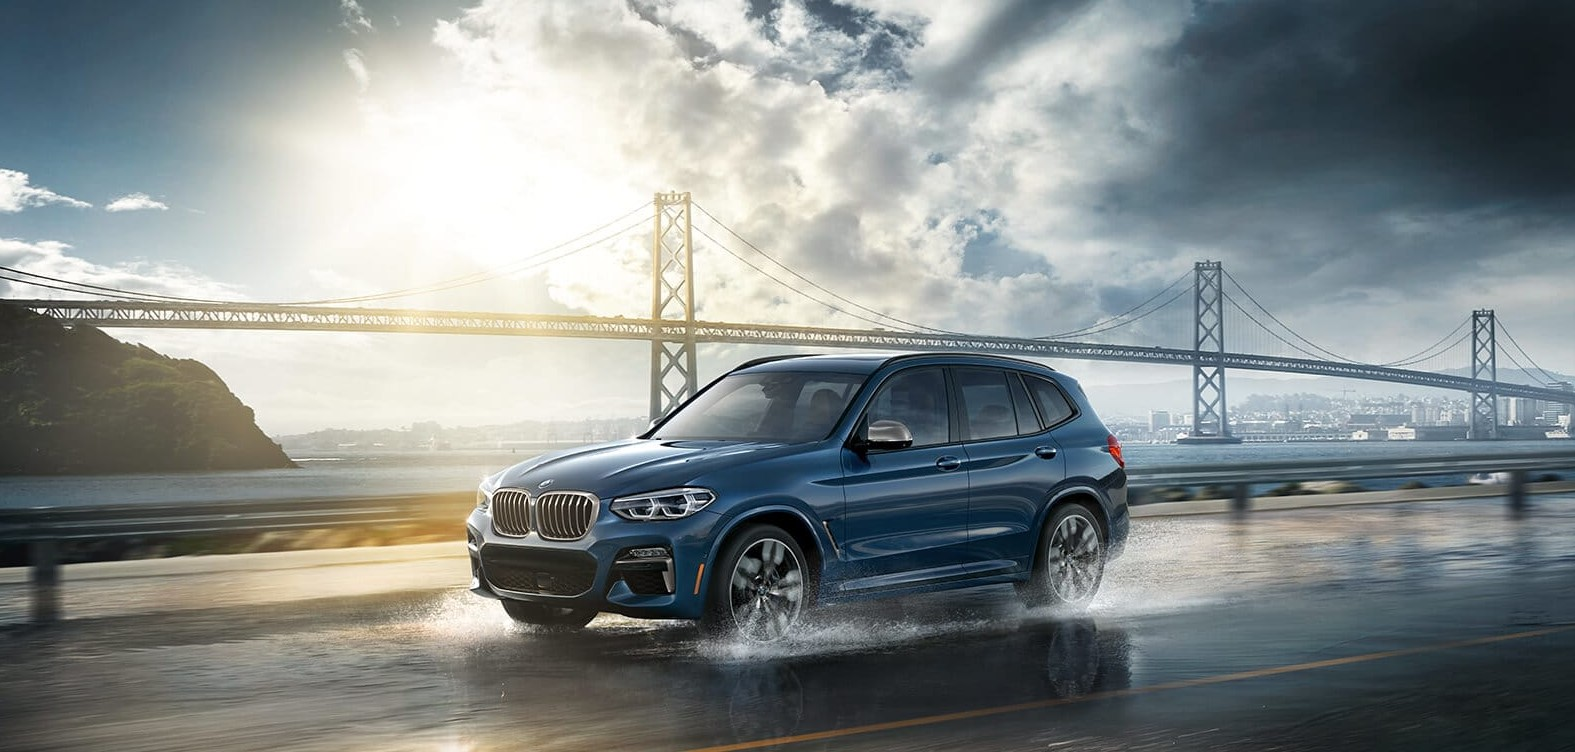 Compare 2019 Bmw X3 Vs 2019 Audi Q3 Sterling Bmw Best Rated